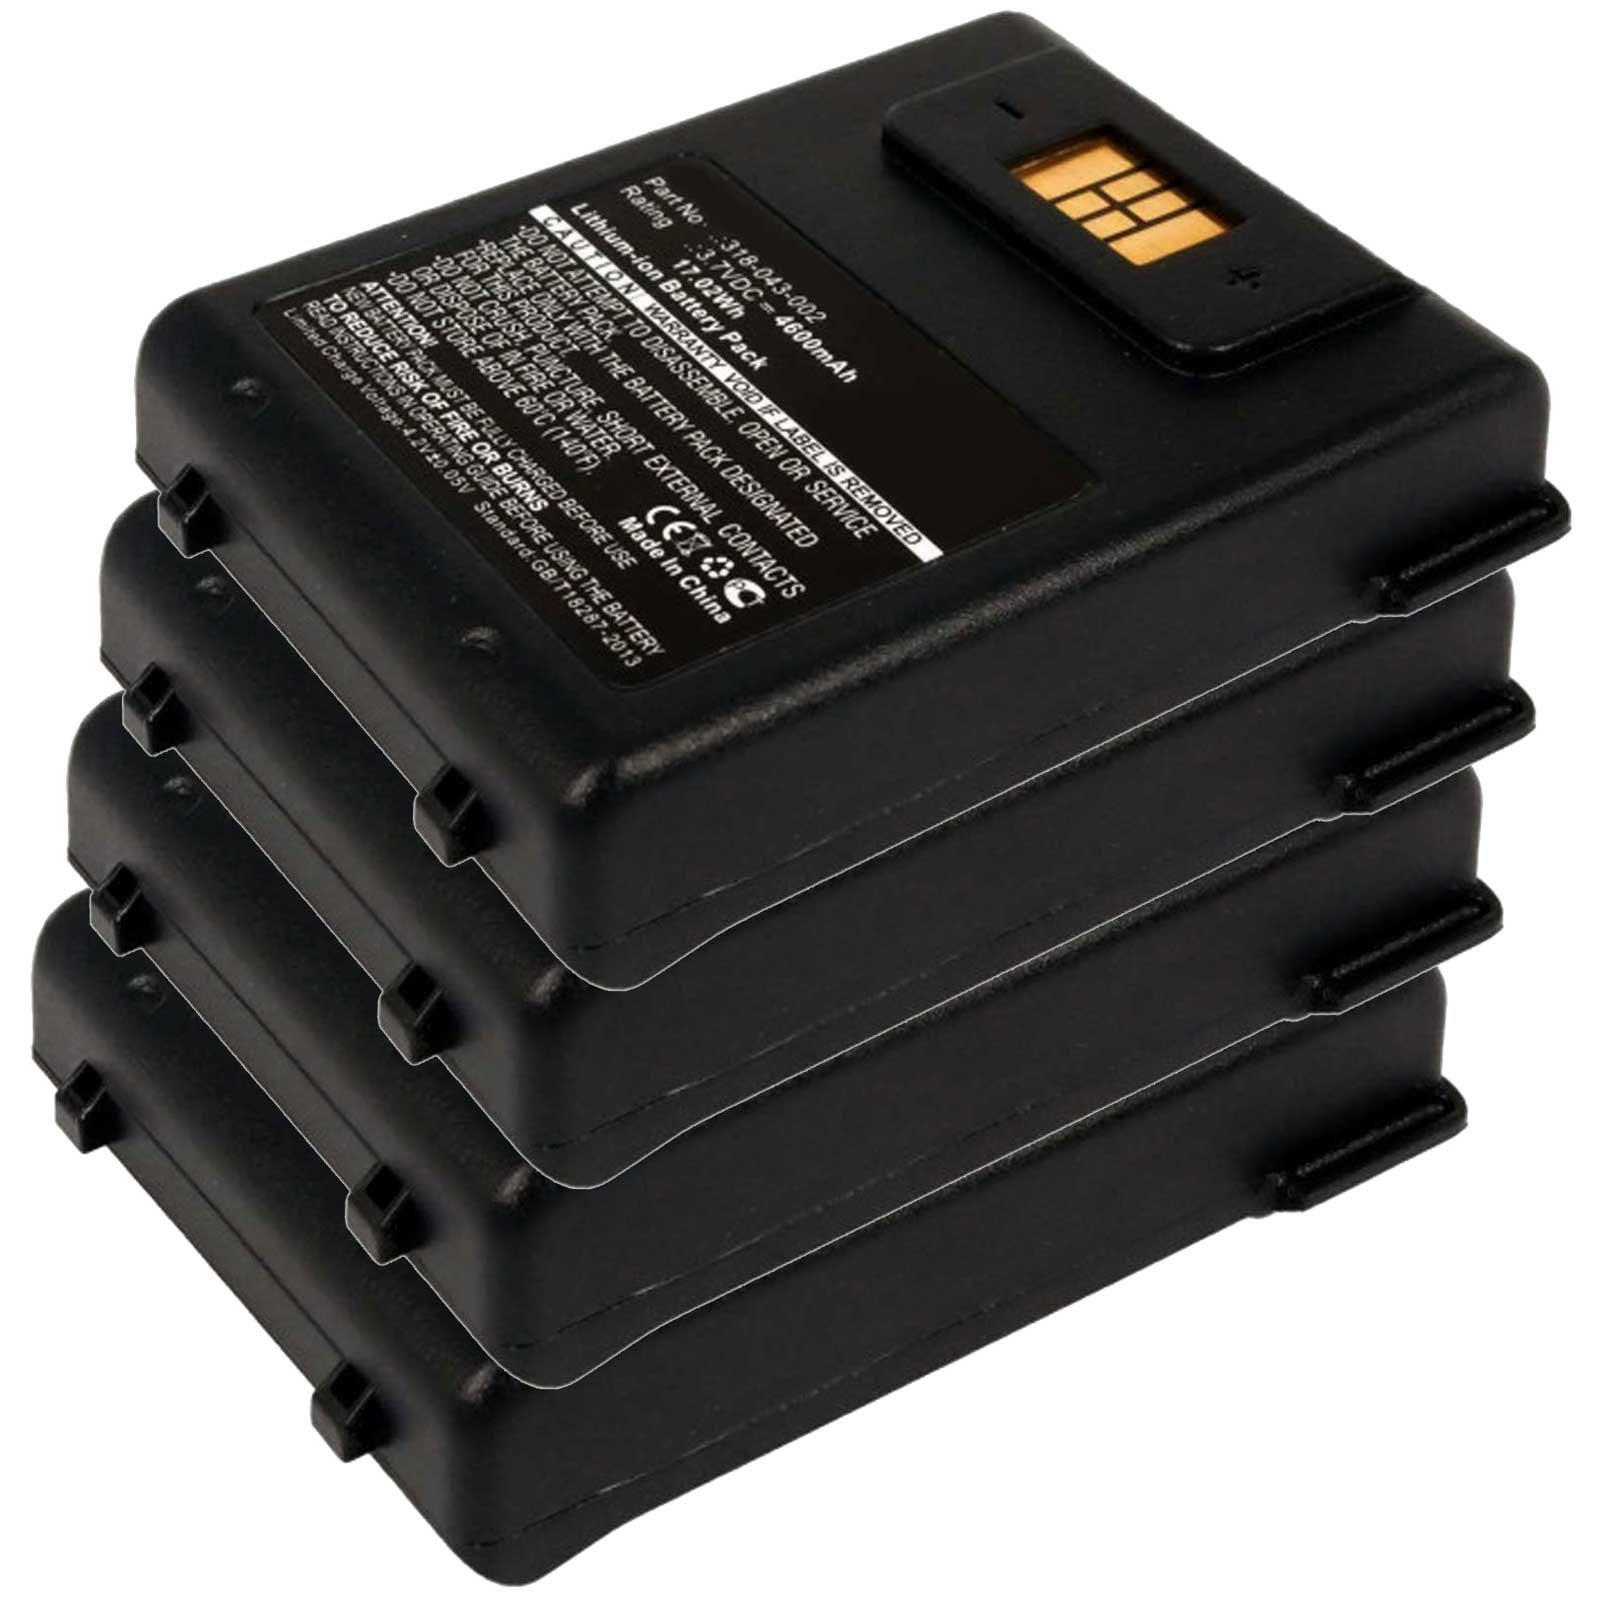 4x Exell EBS-CN70X Li-Ion 3.7V 4600mAh Batteries For Intermec CN70, CN70e. Replaces Cameron Sino CS-ICN700BX, INTERMEC 318-043-002